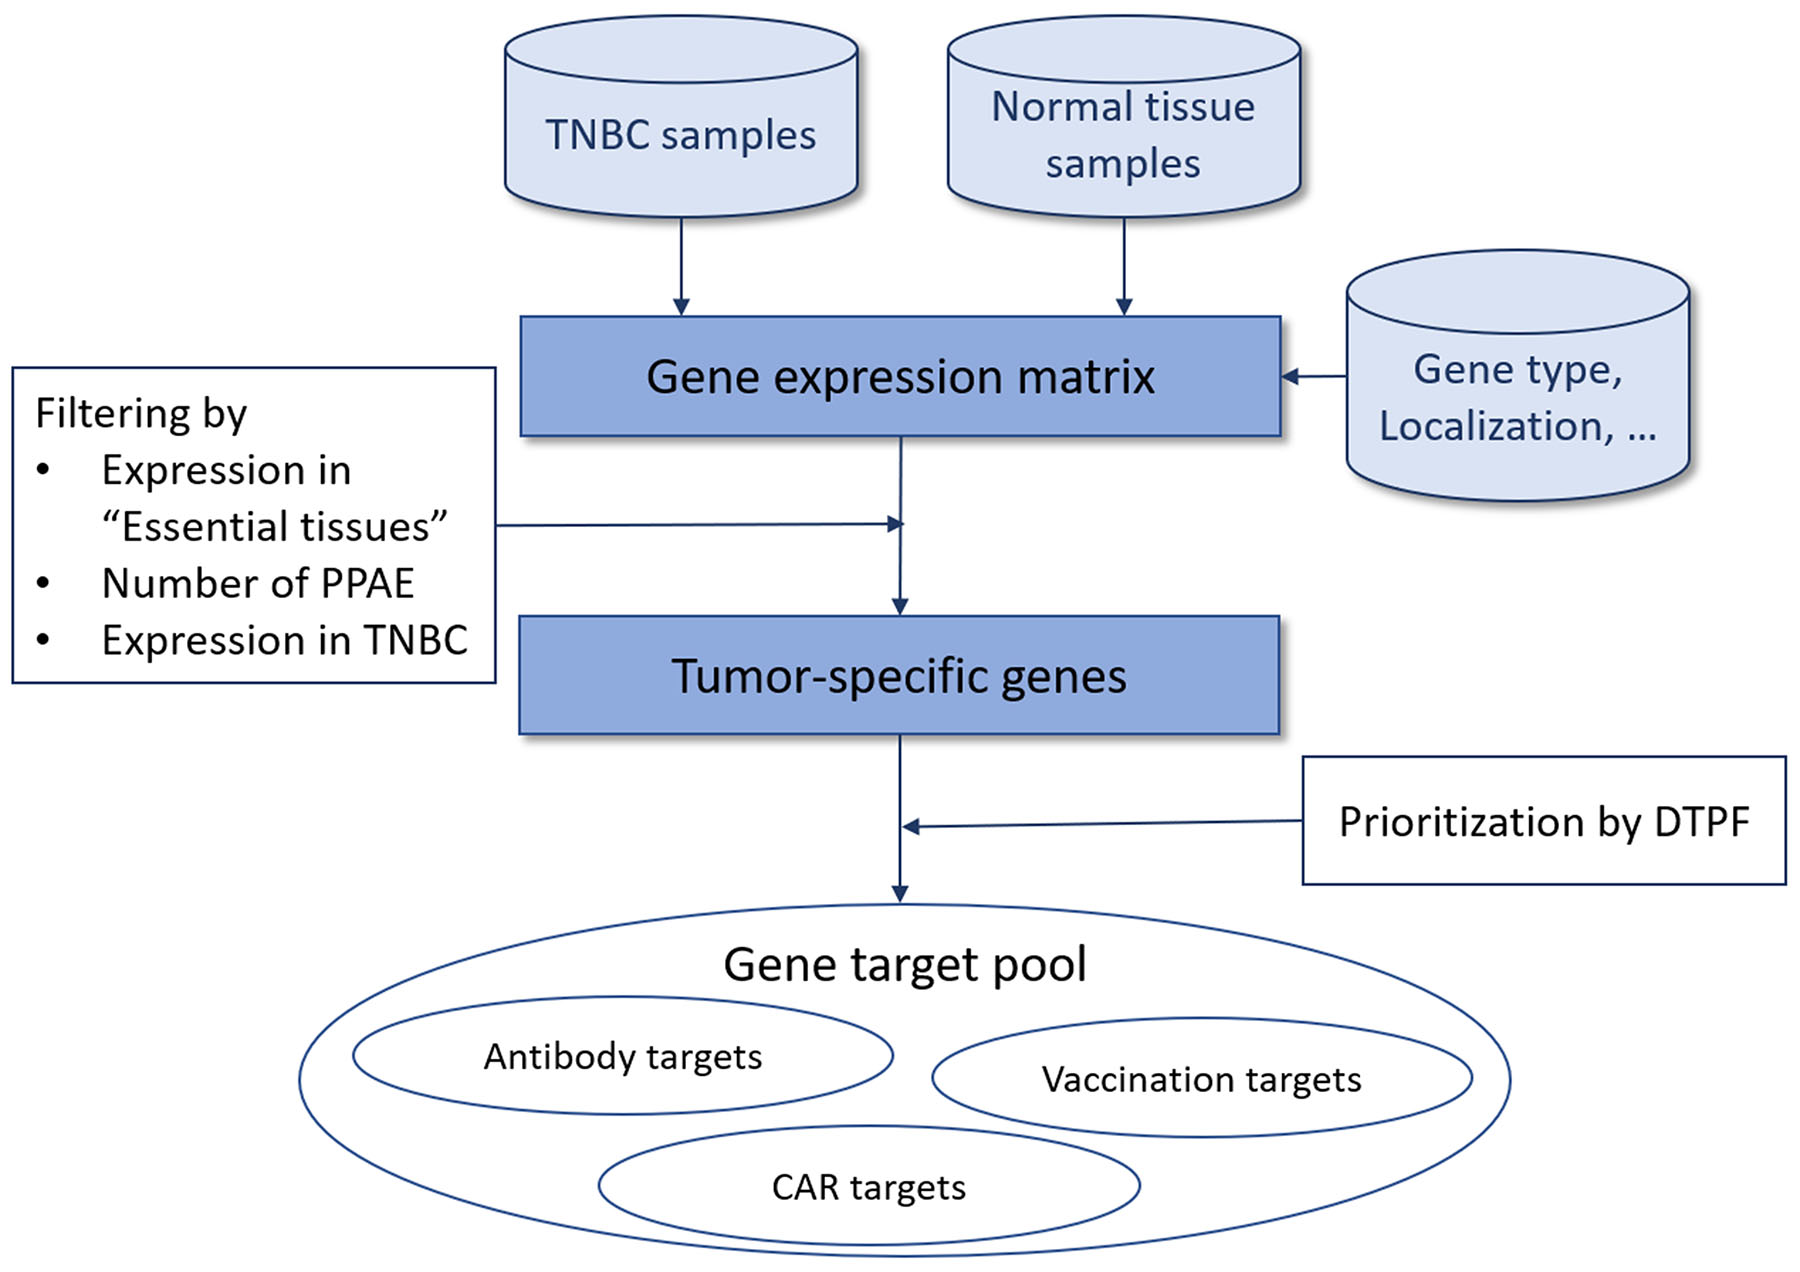 Overview of our approach for tumor-specific antigen selection and prioritization.